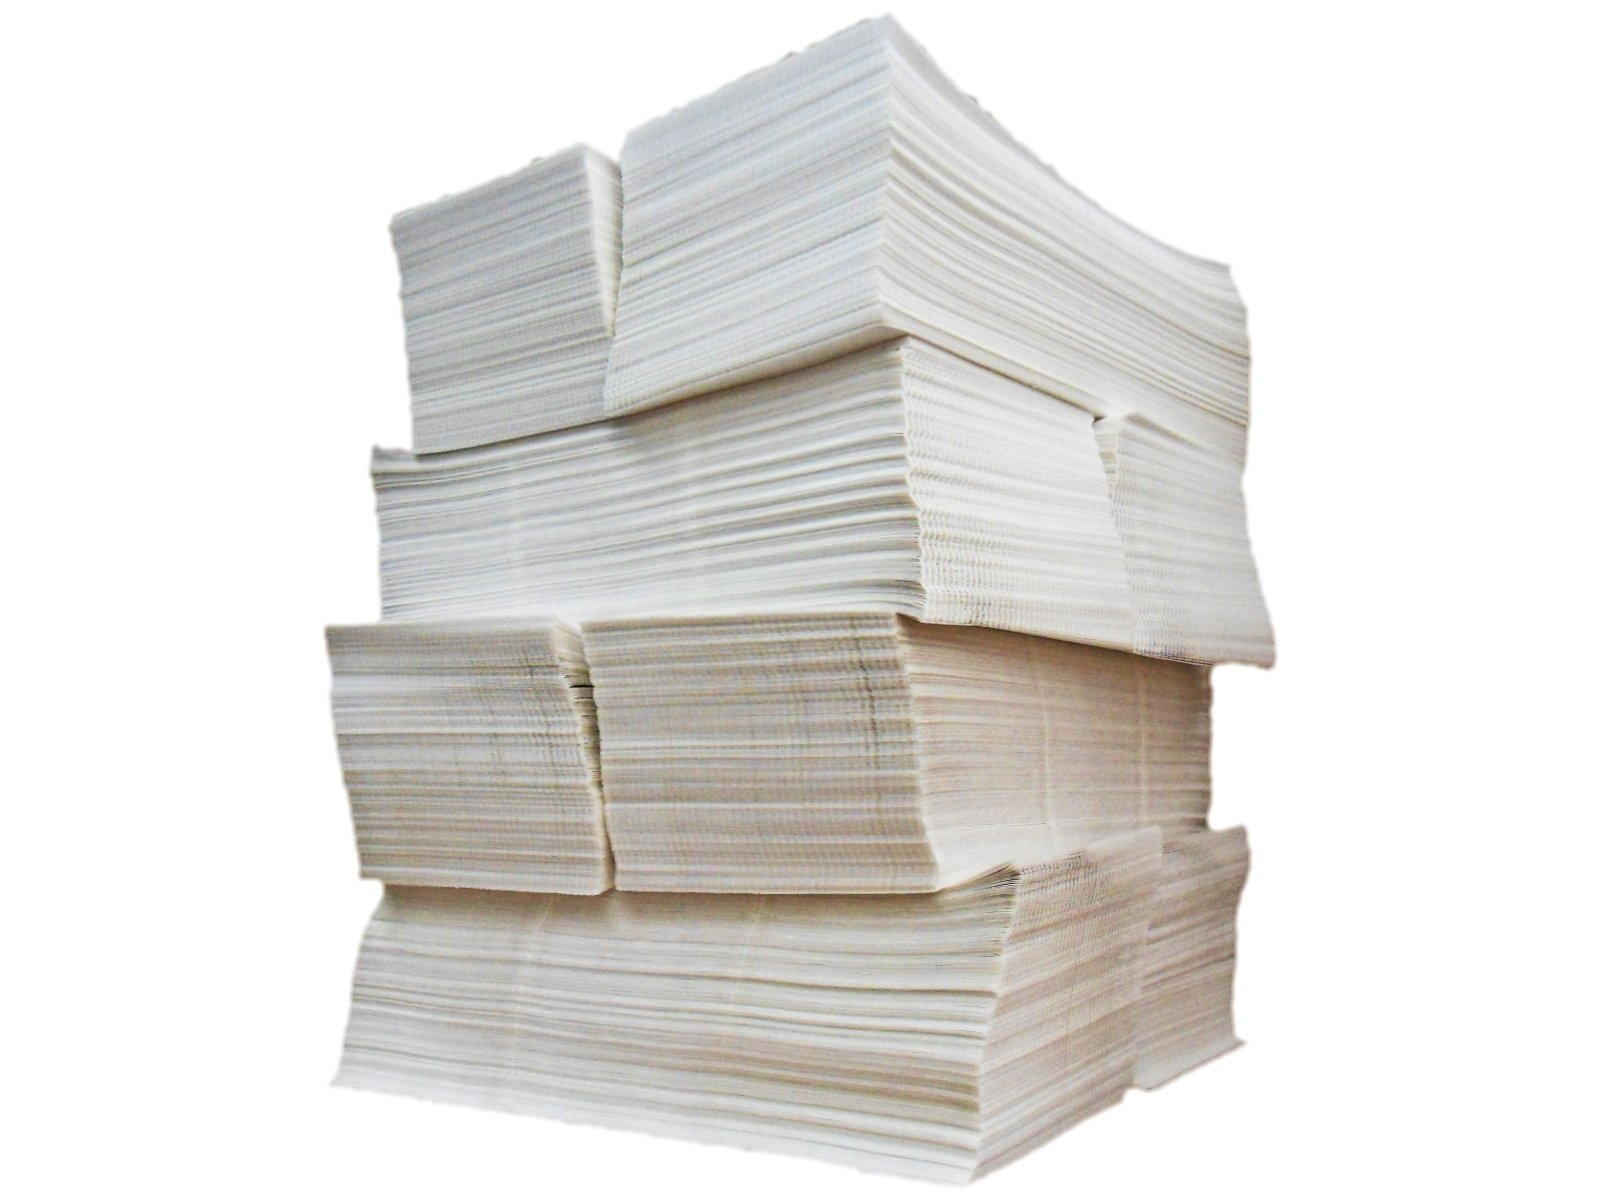 Pile of Paper, Blank, Report, Order, Organize, HQ Photo